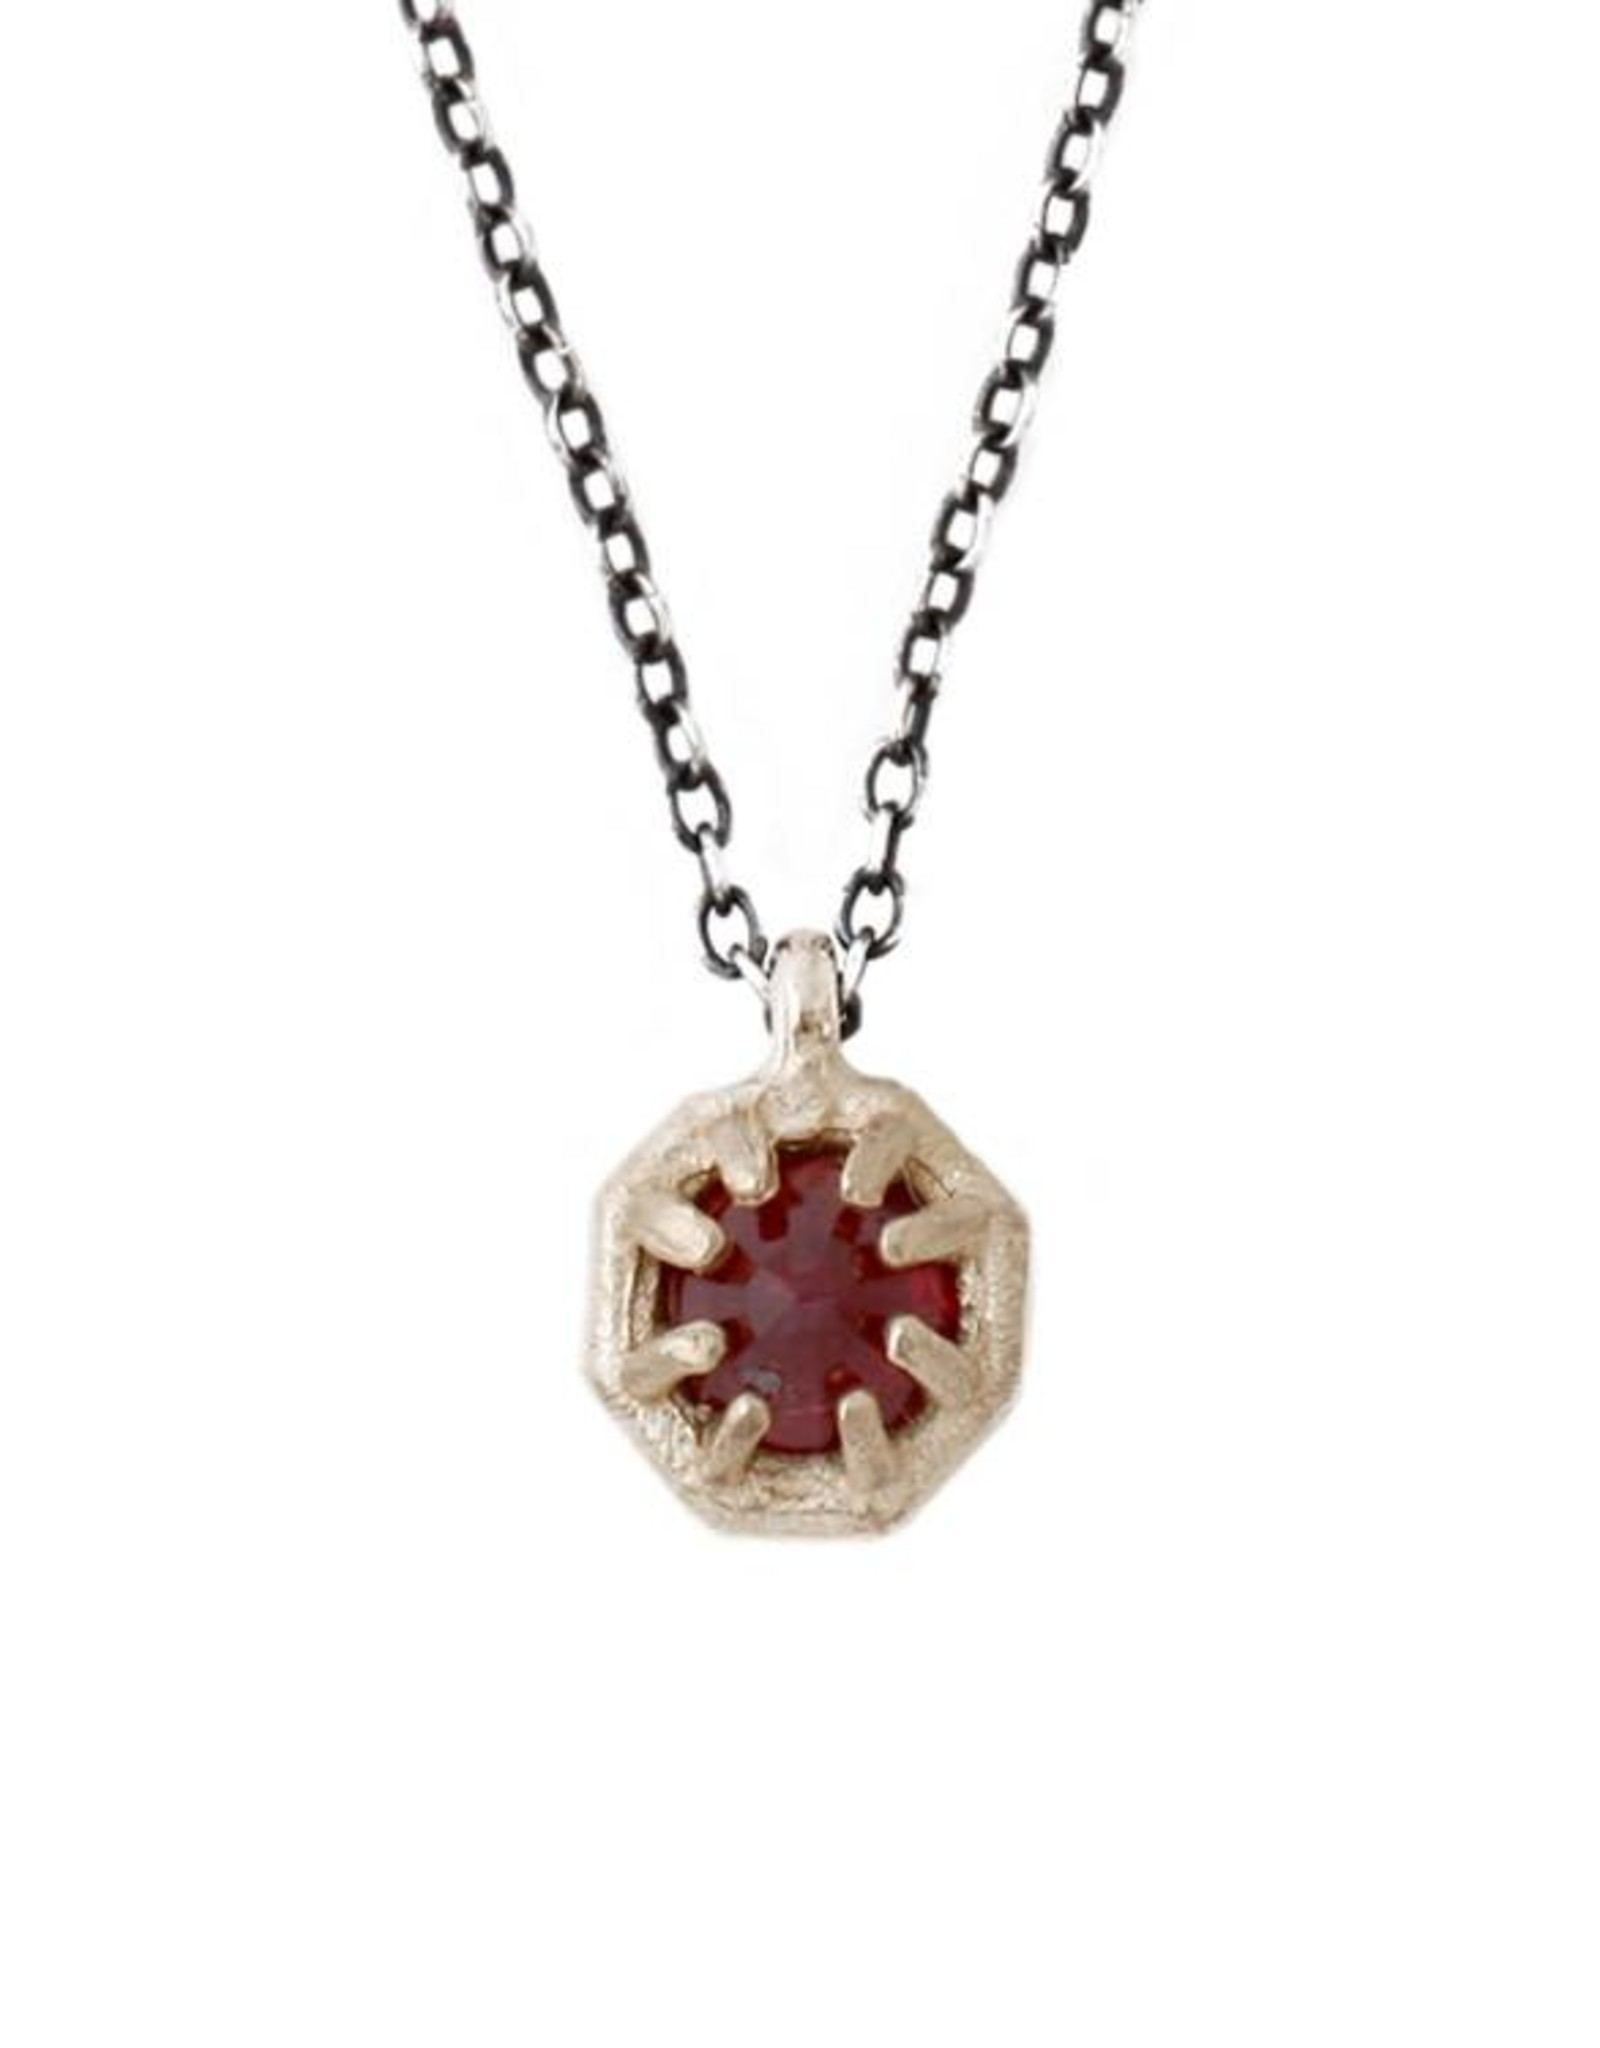 Lauren Wolf Jewelry Tiny Gold Octagon Necklace - Ruby